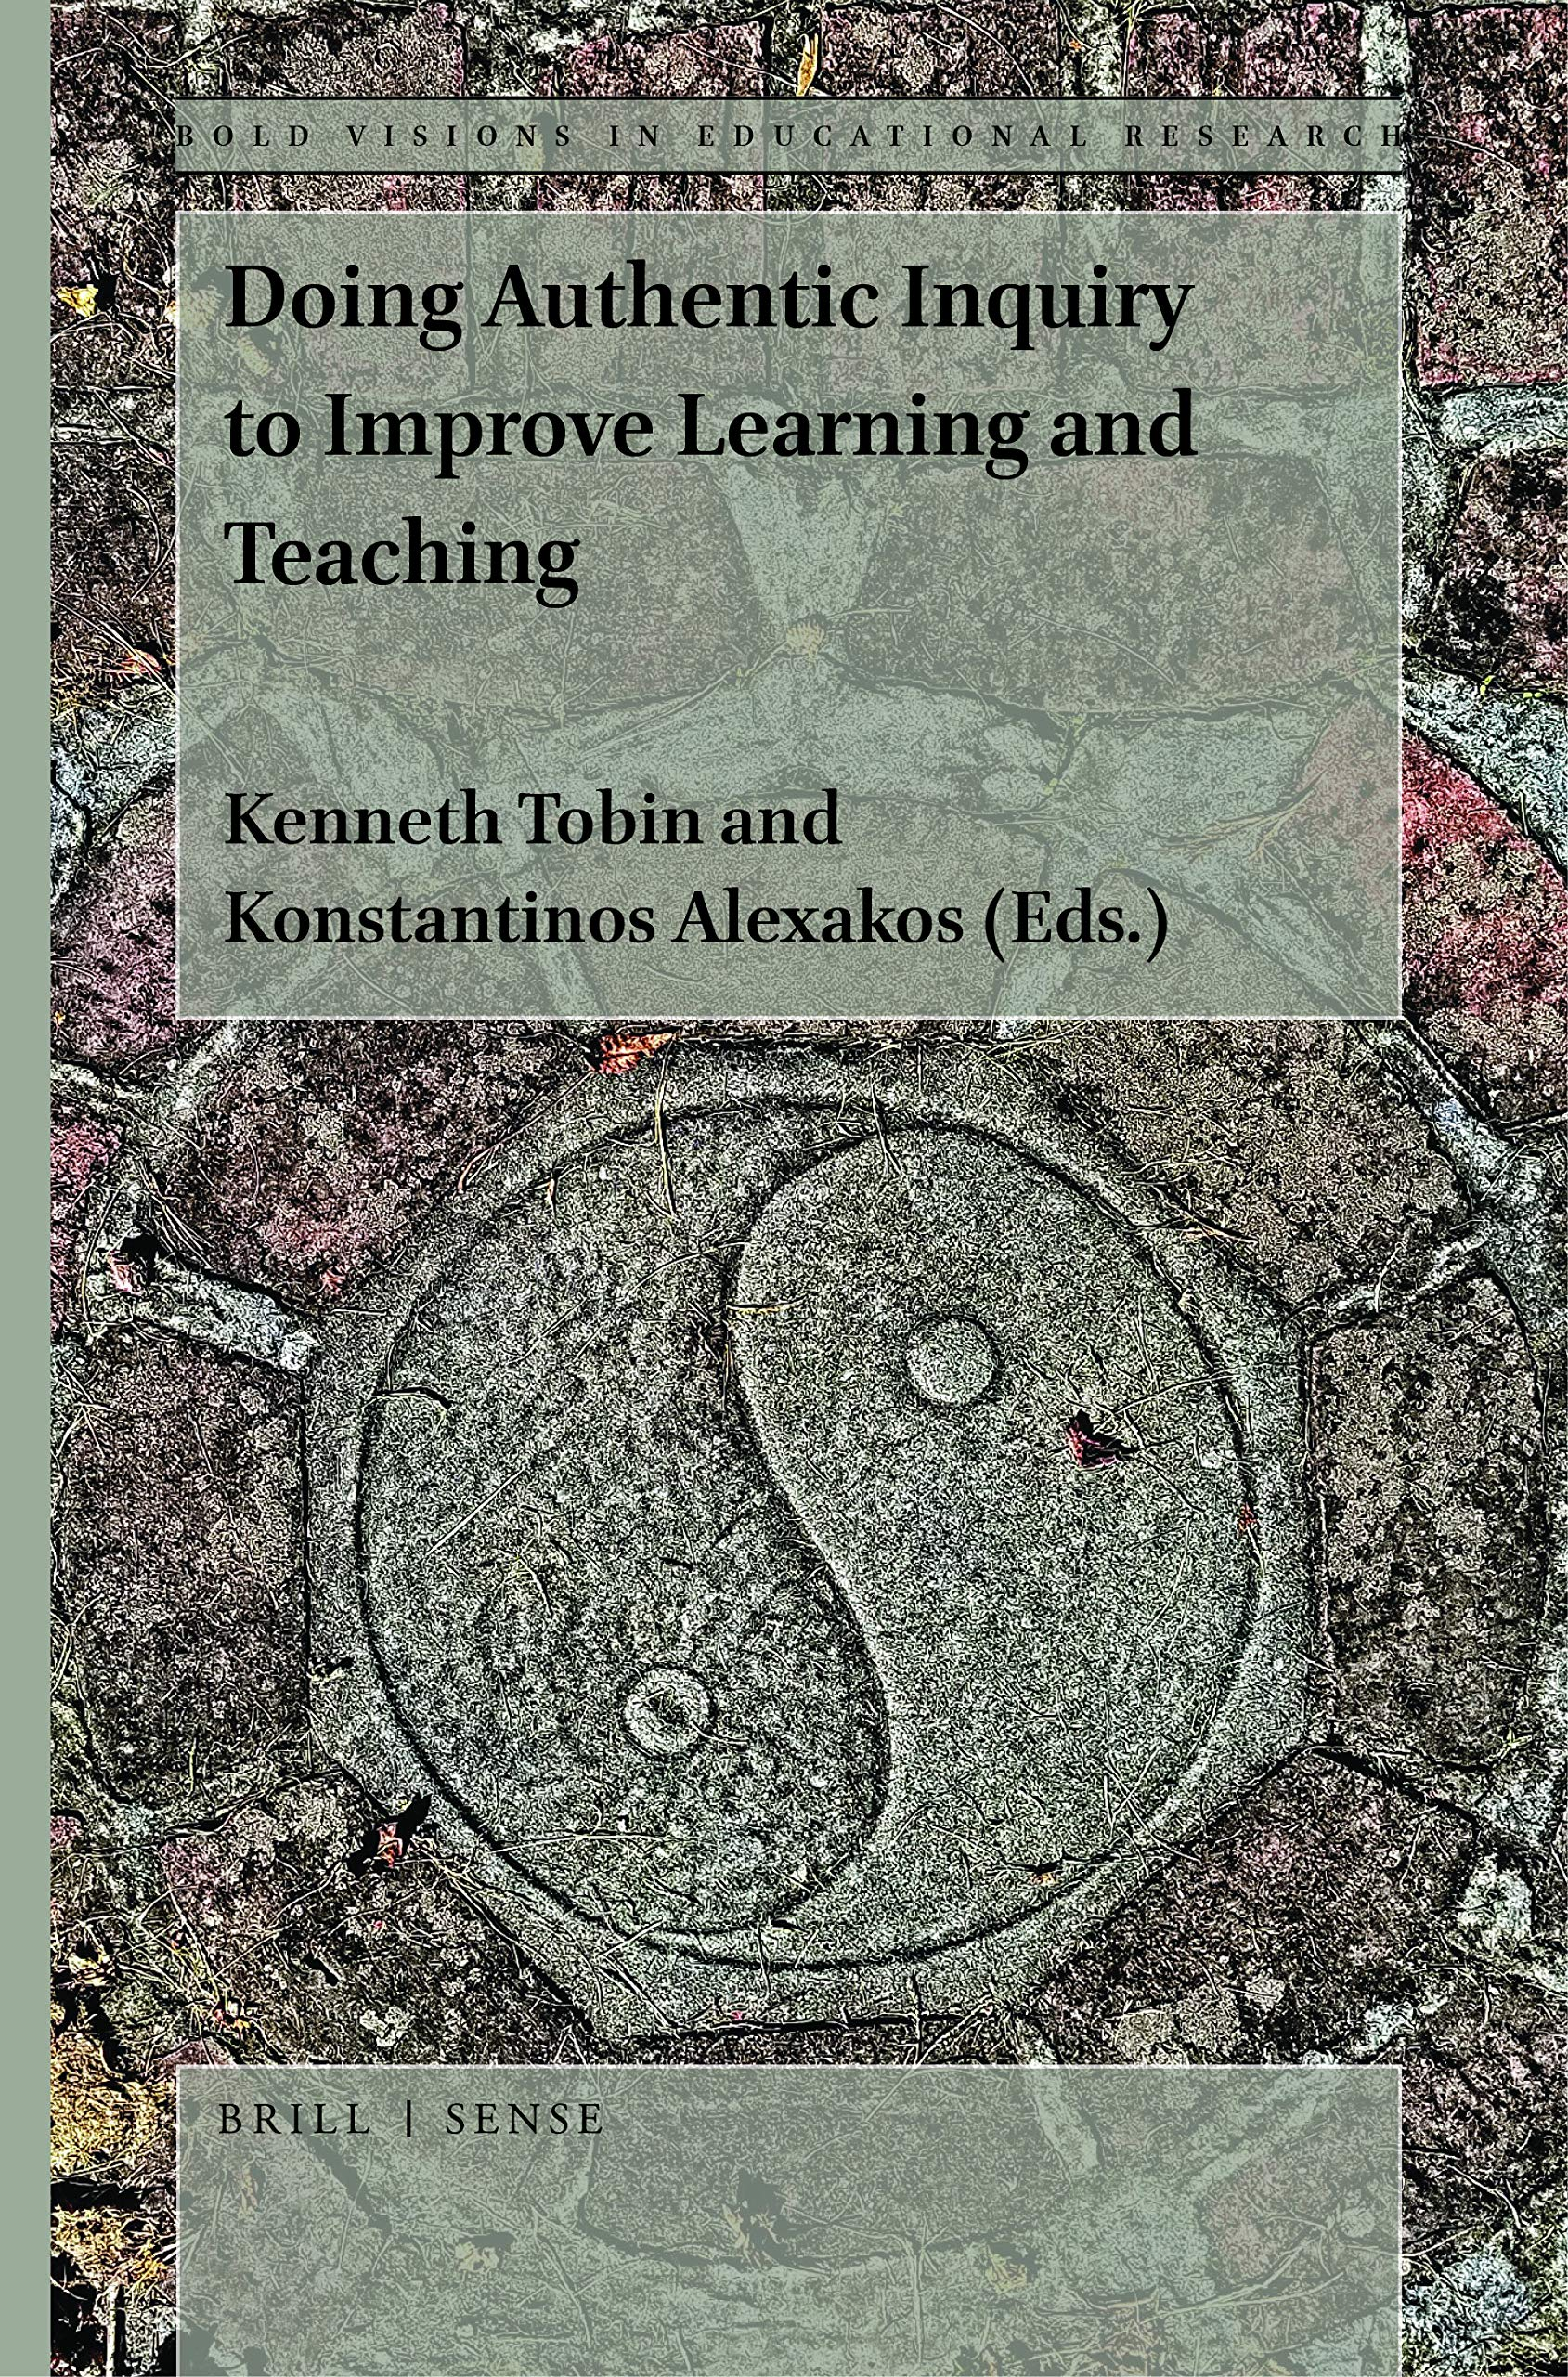 cover of Konstantinos Alexakos and Kenneth Tobin, eds.	Doing Authentic Inquiry to Improve Learning and Teaching. Brill, 2021.	LB1027.23 .D65 2021